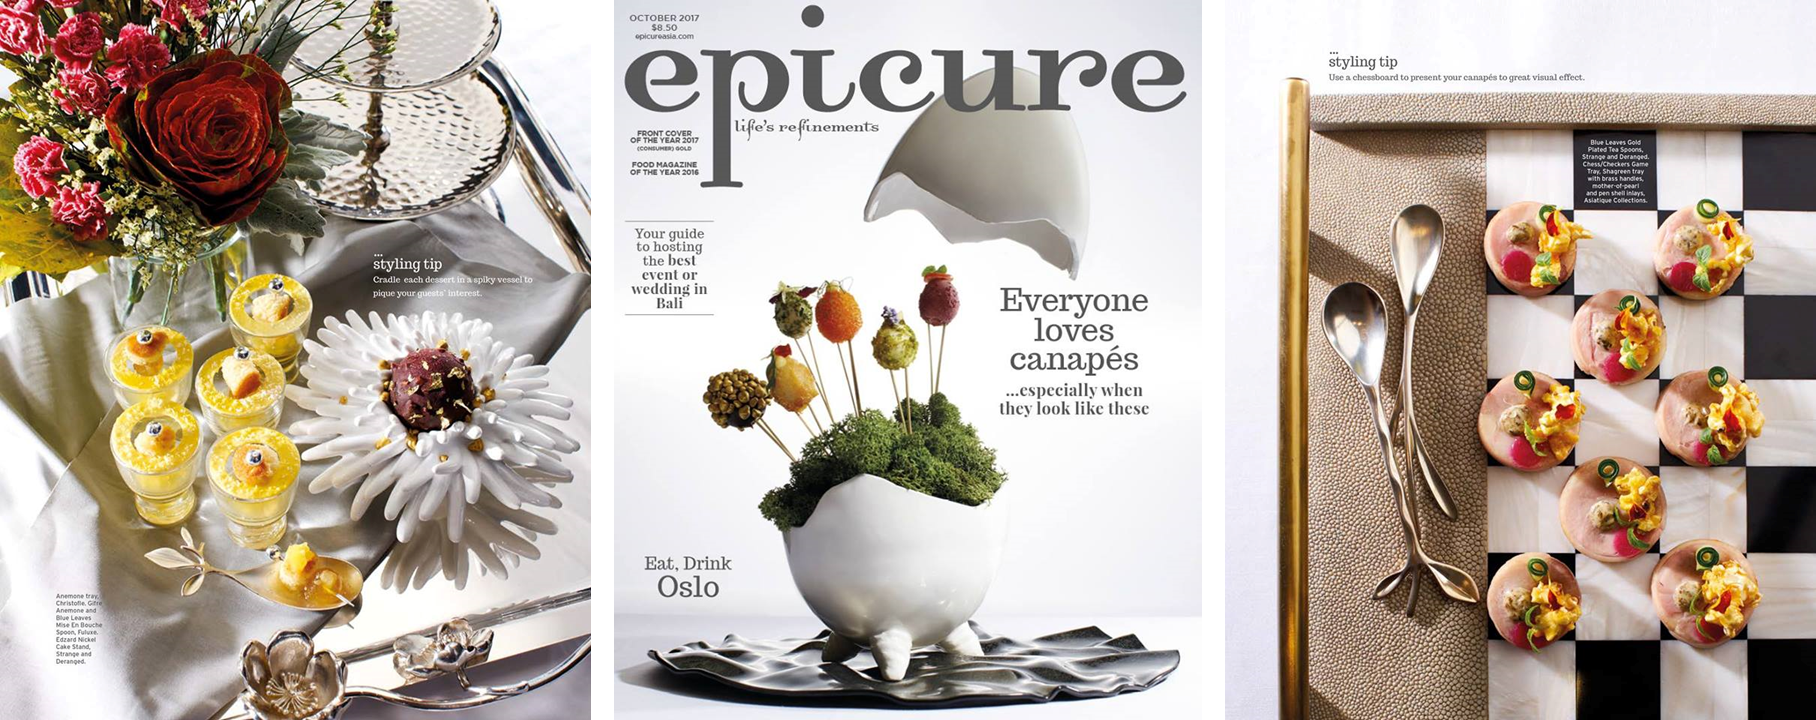 Fuluxe_Epicure_Lifes refinement_October 2017 Cover